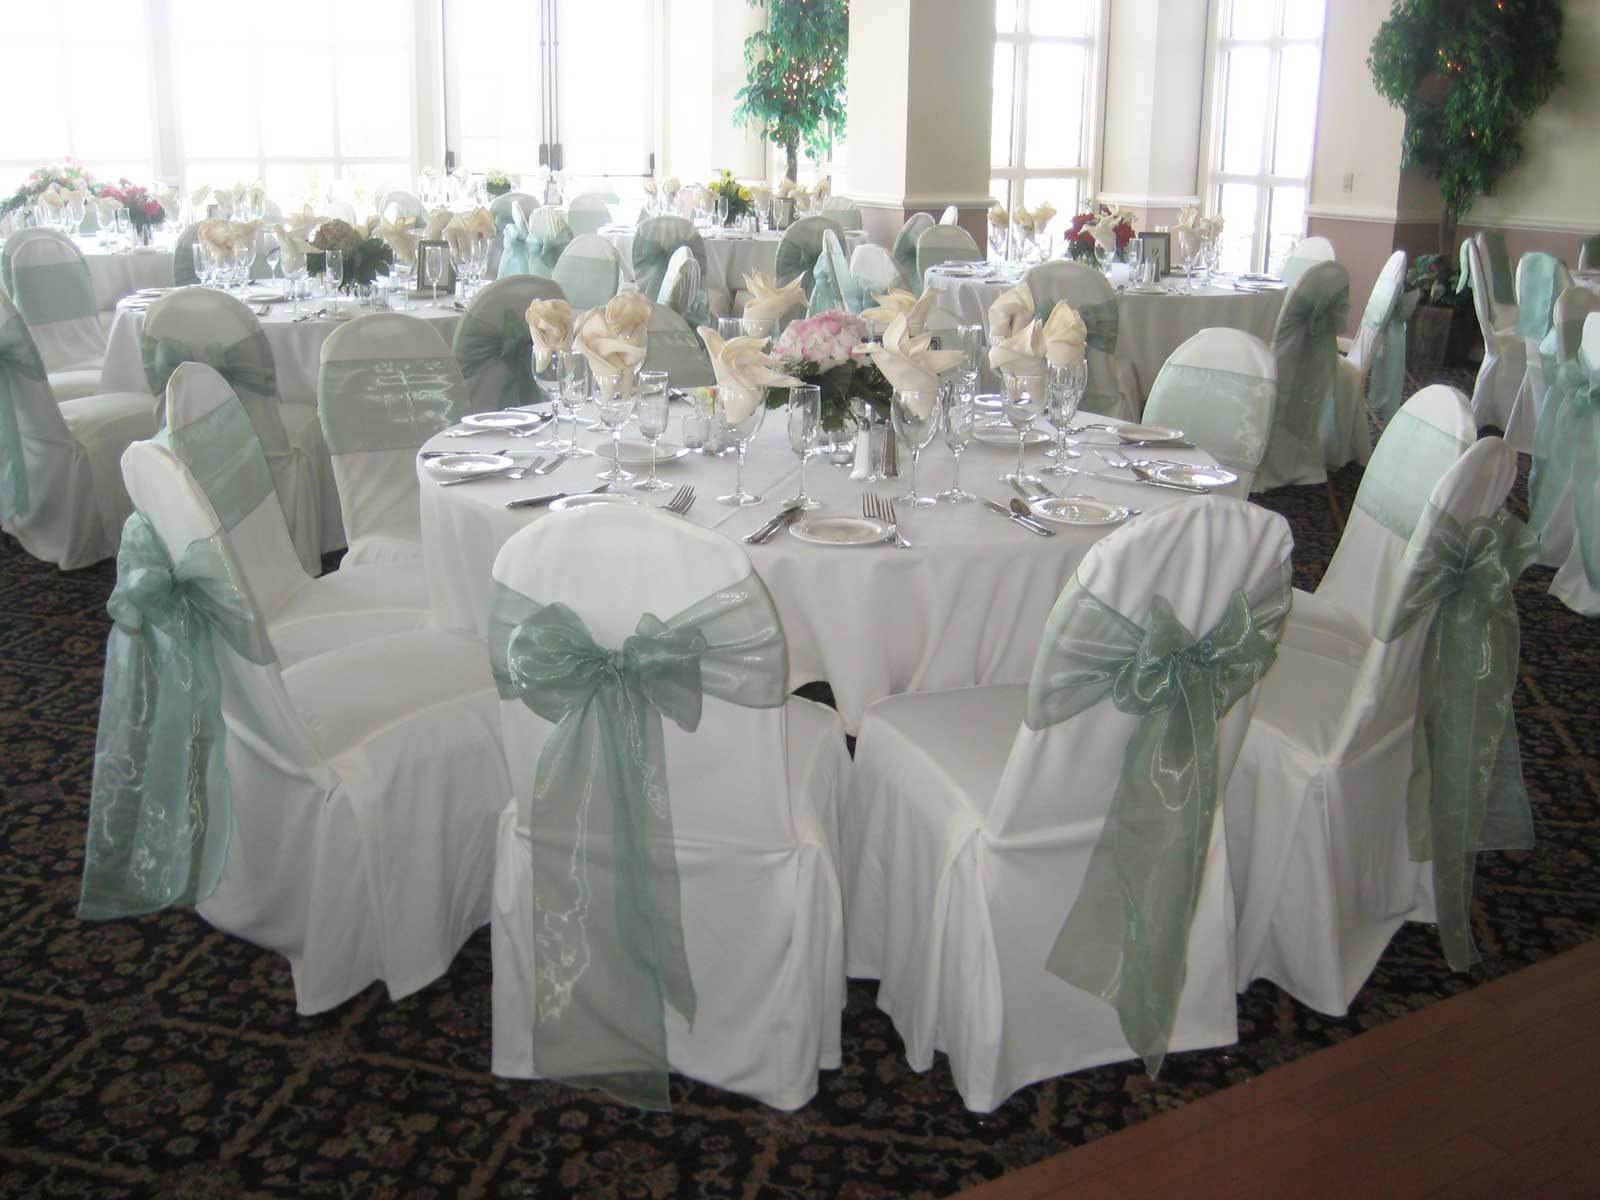 Ceremony, Flowers & Decor, Ceremony Flowers, Centerpieces, Tables & Seating, Flowers, Centerpiece, Chairs, Satin, Reception site, Linen, Decorations, Covers, Sashes, Wedding decor, Organza, Just chair covers, Chaircovers, Irvine